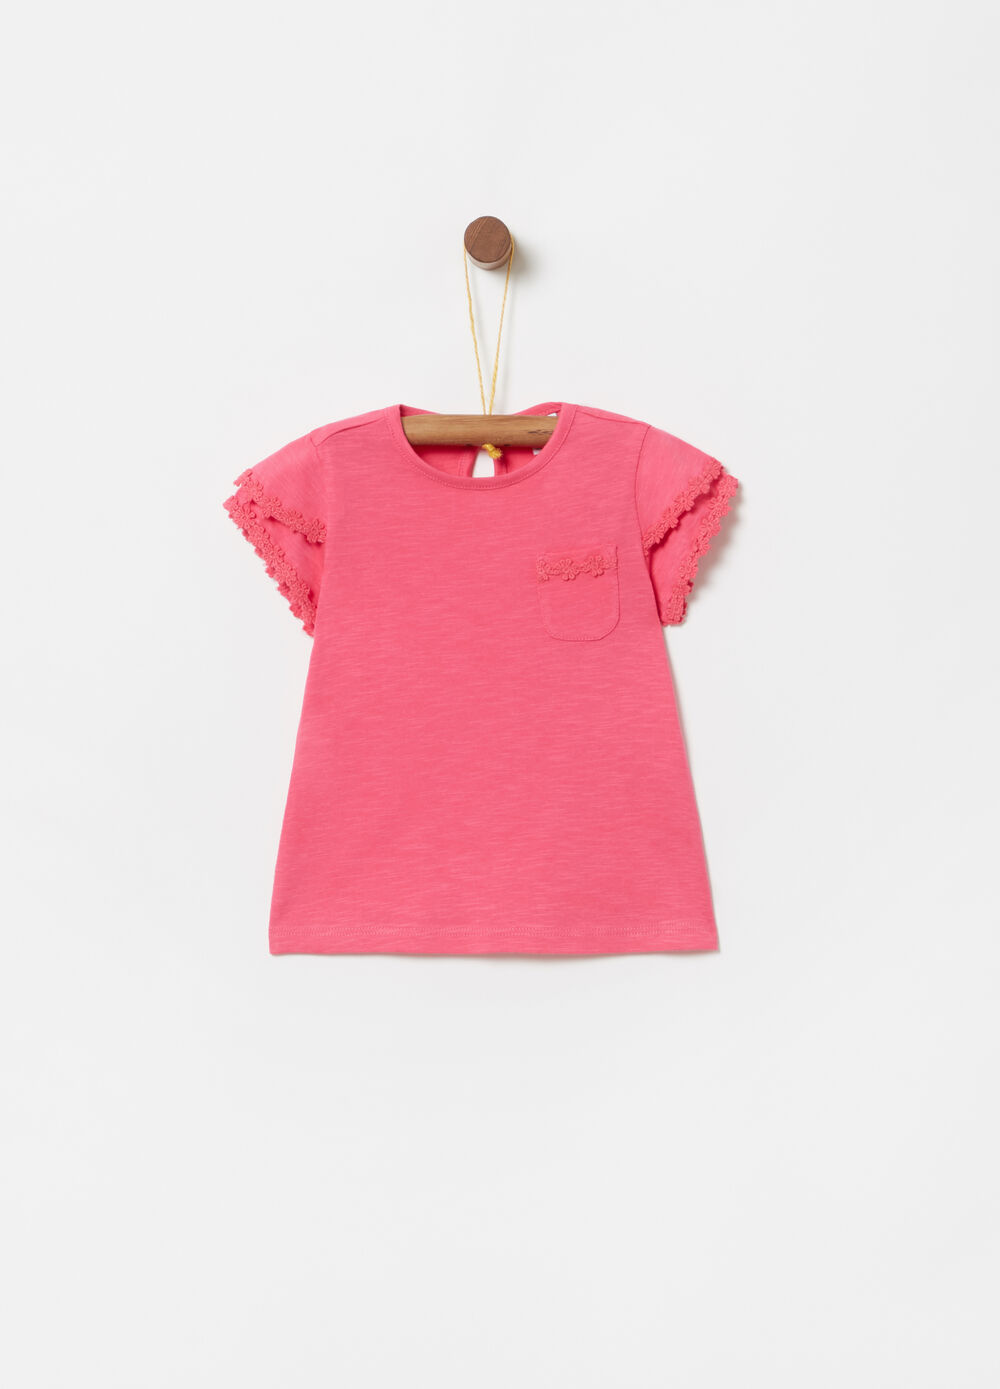 T-shirt with sleeves, pocket and trim